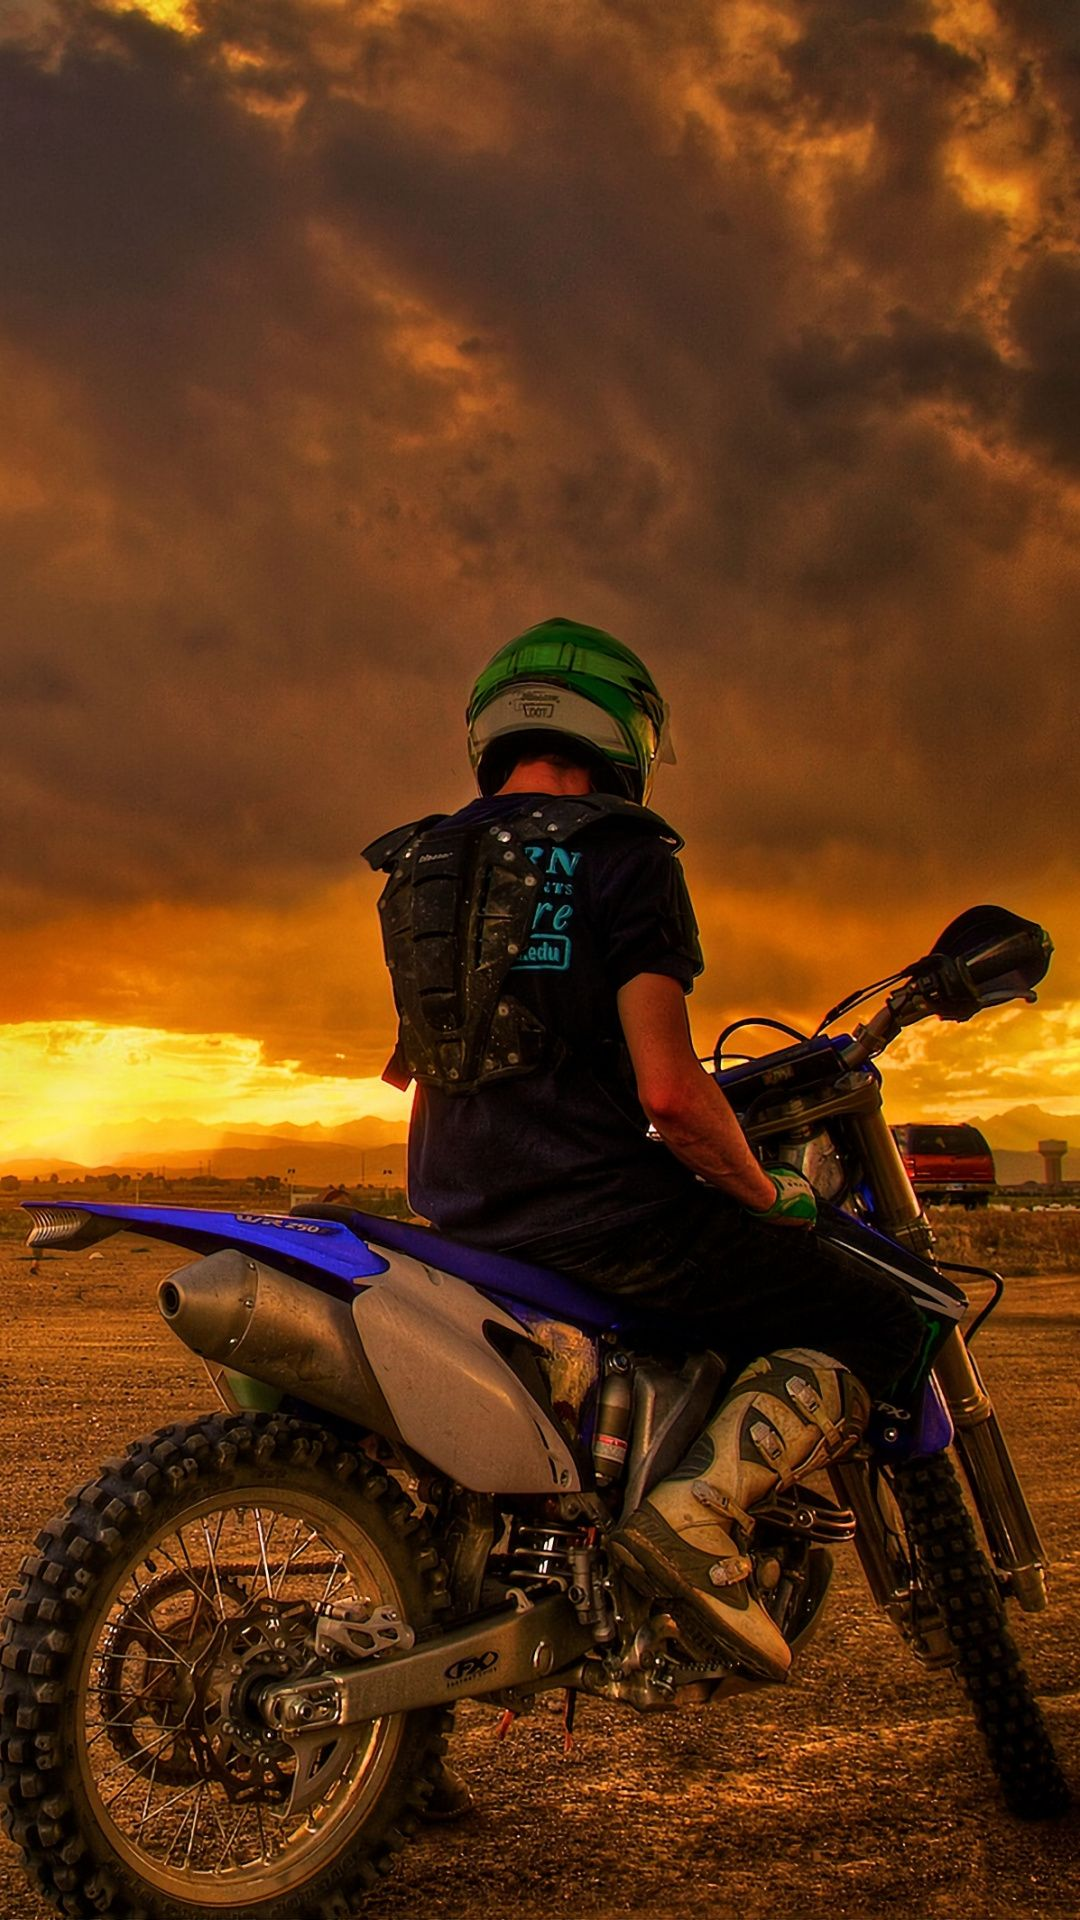 Wallpapers freestyle motocross, motorcycle, sunset, ktm